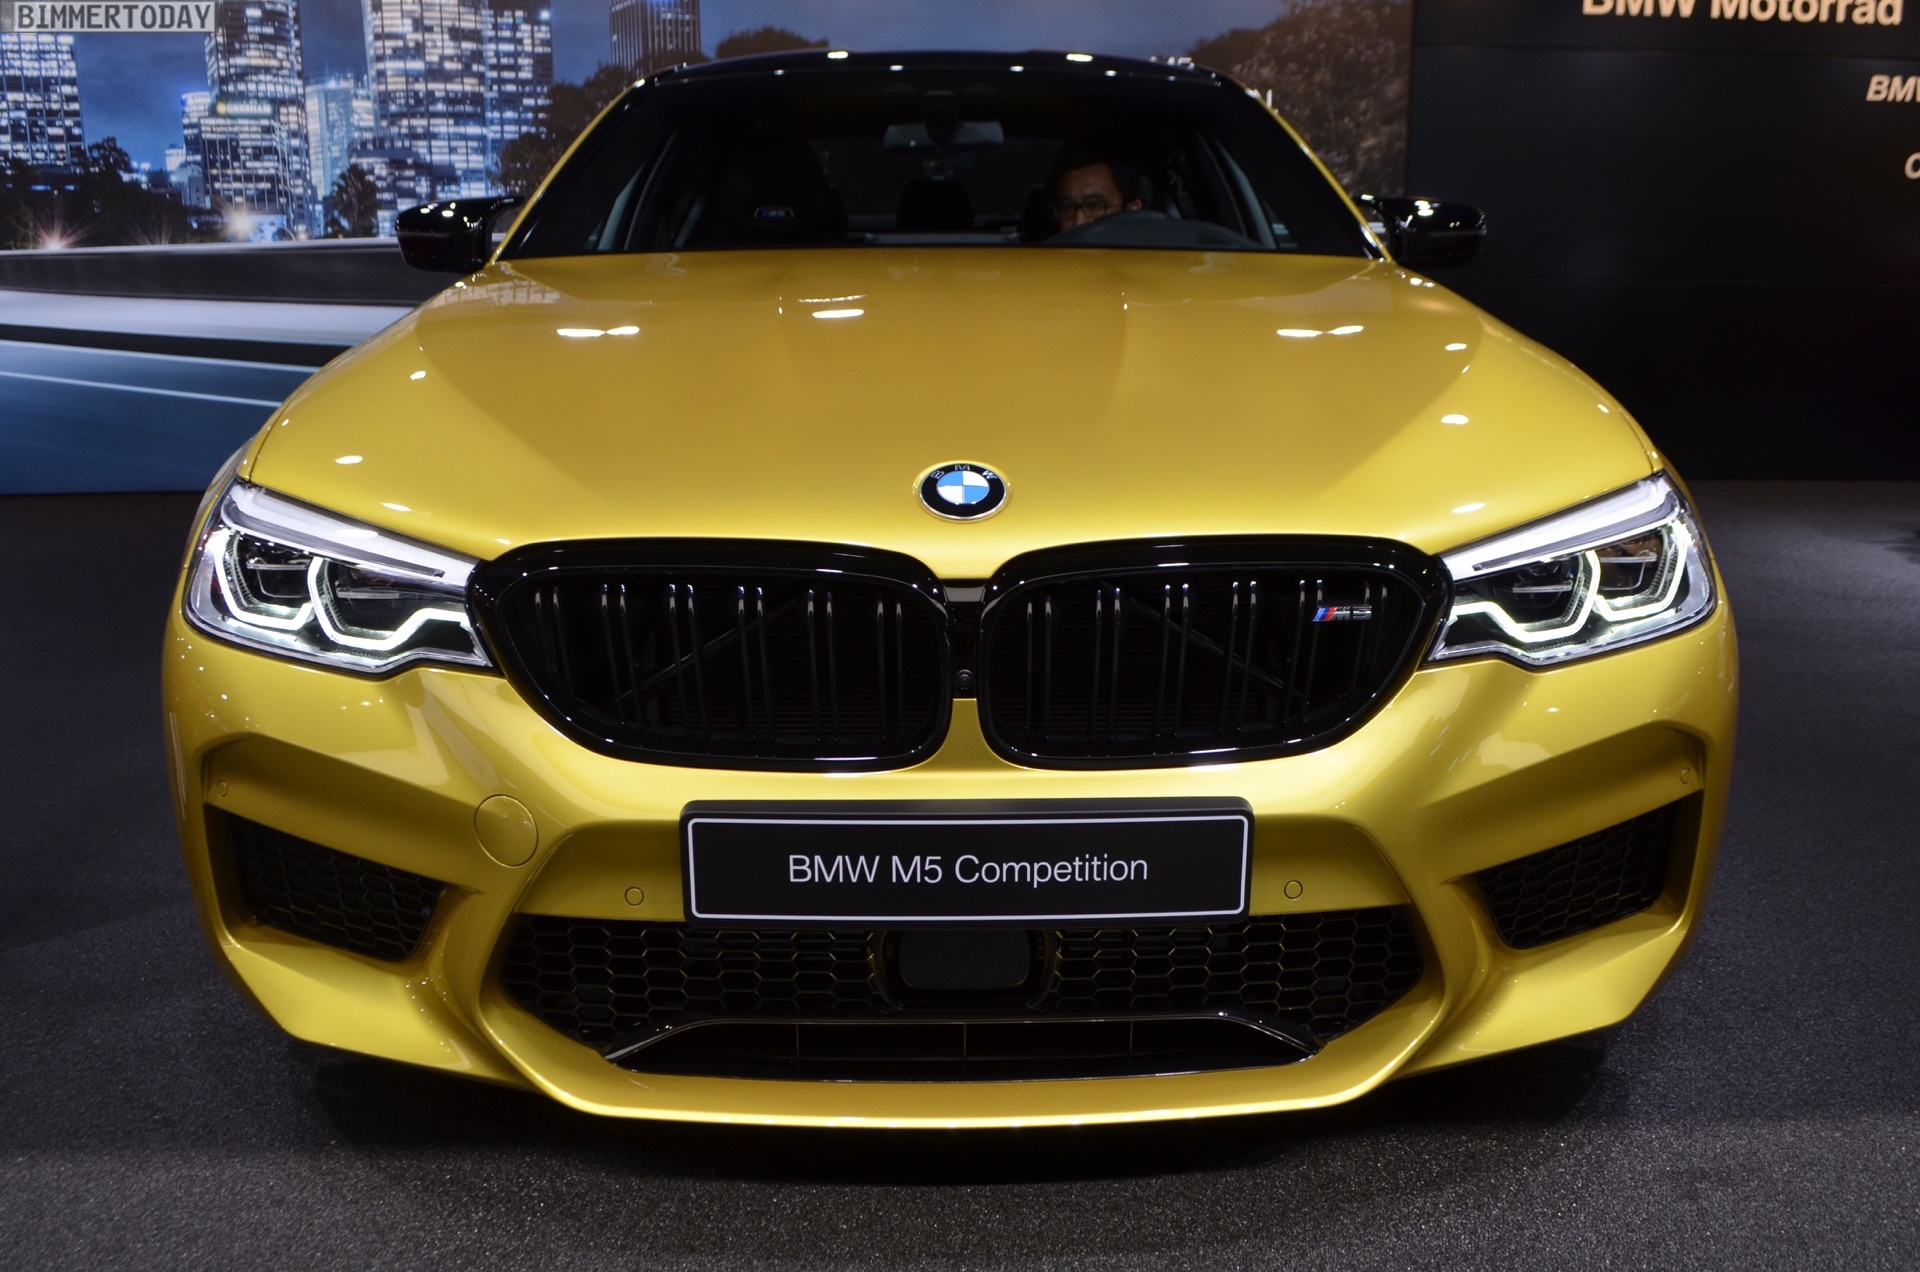 Genf 2019 Bmw Individual M5 Competition In Austin Yellow